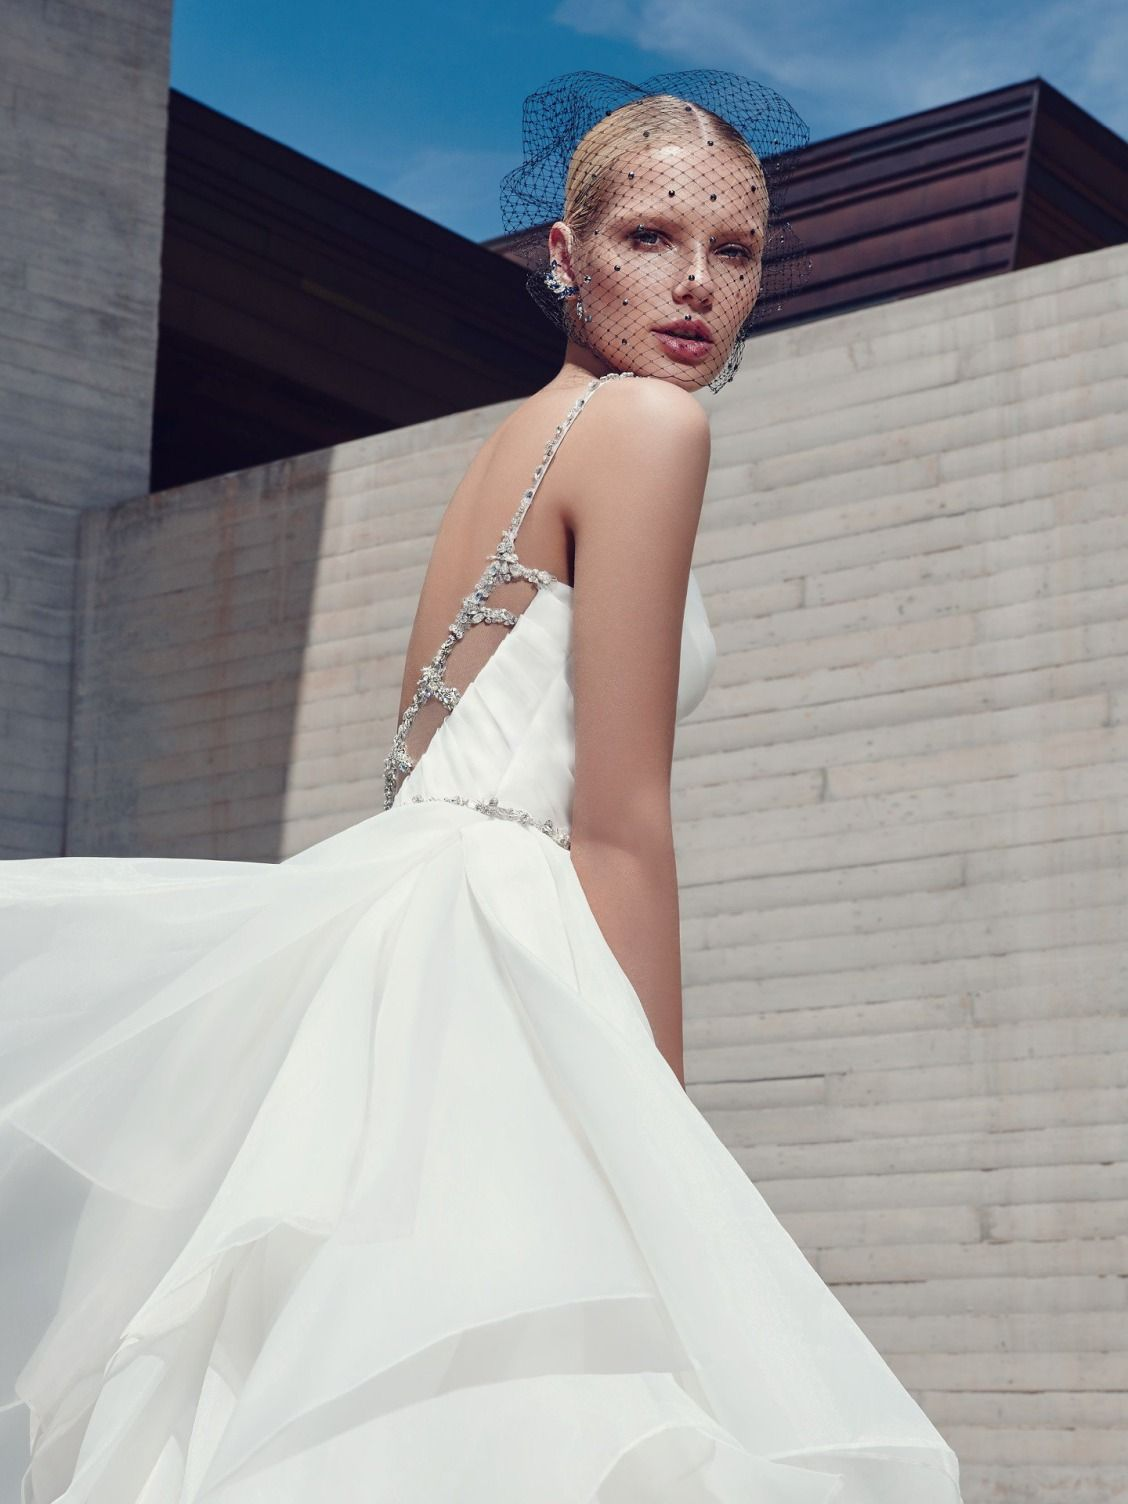 This glamorous ballgown features a pleated bodice and tiered layers of Marquice organza. Swarovski crystals and beading adorn the spaghetti straps, statement back detailing, and waistline. Finished with sweetheart neckline, crystal buttons and zipper closure.